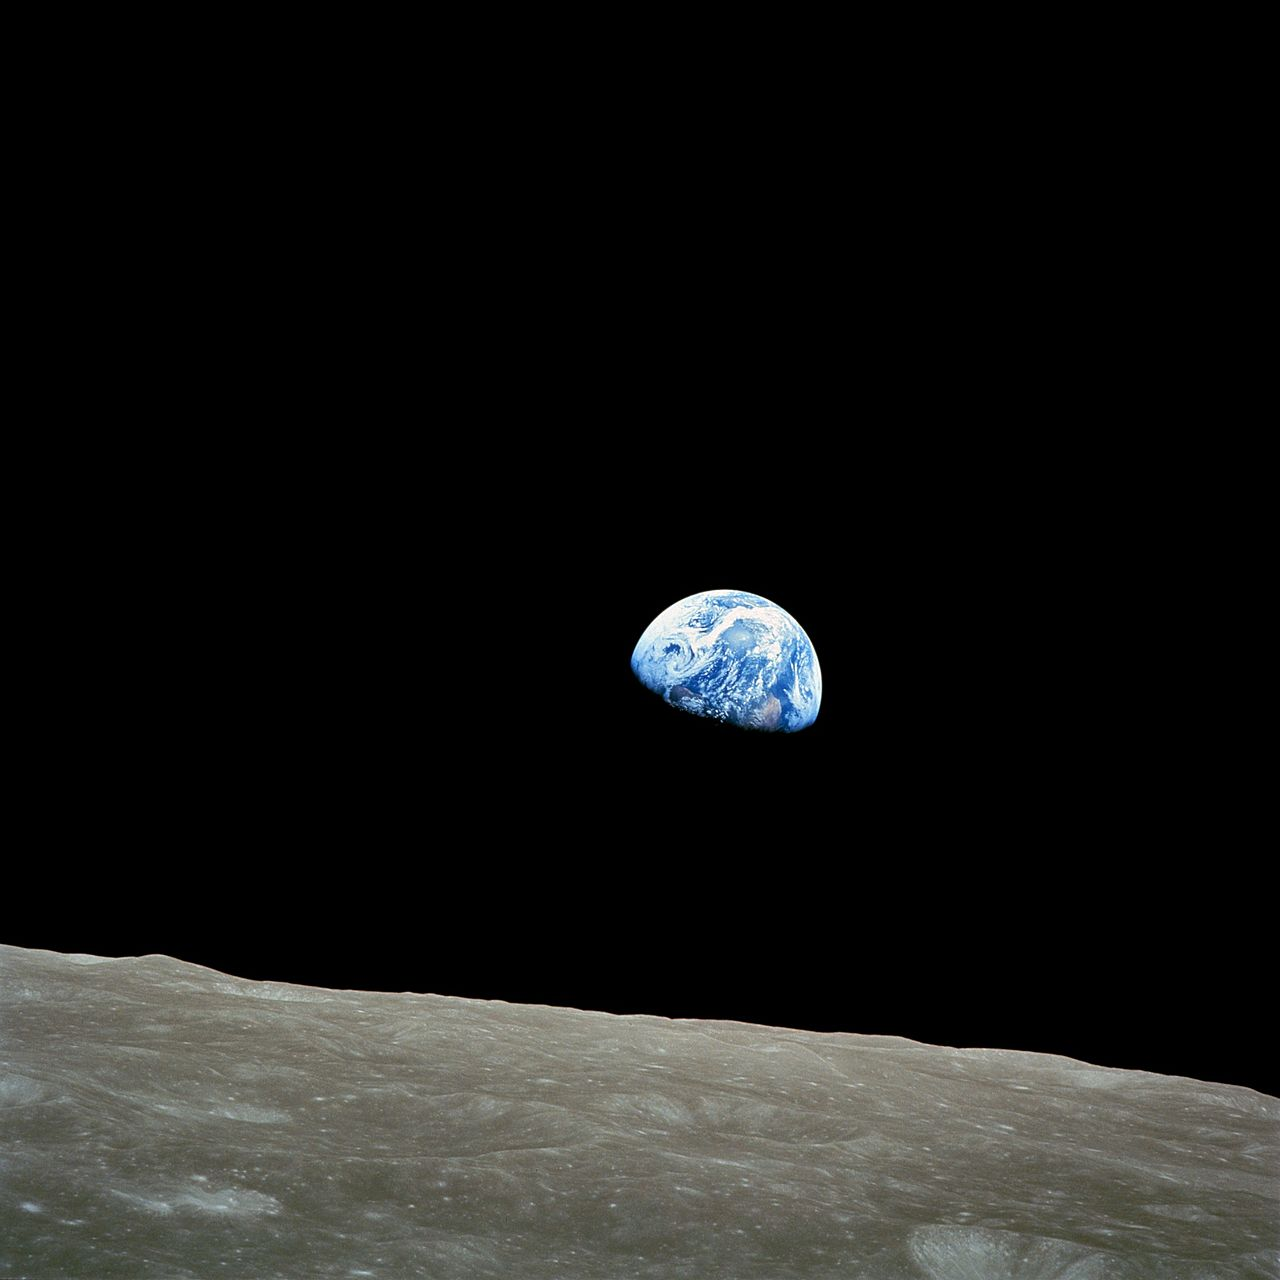 Image of Earthrise from Lunar Orbit.